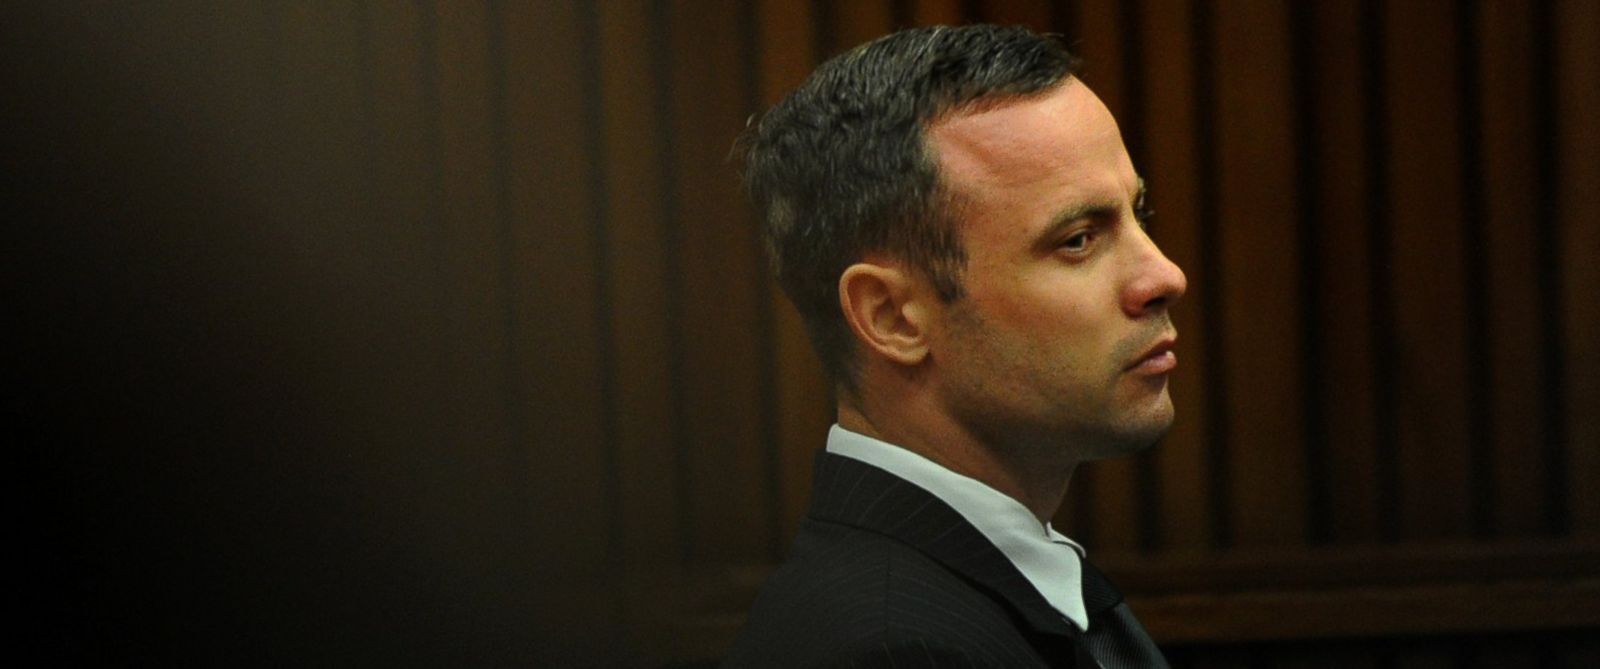 PHOTO: Oscar Pistorius, listens as he sits in the dock waiting for proceedings to begin in court in Pretoria, South Africa, March 18, 2014.